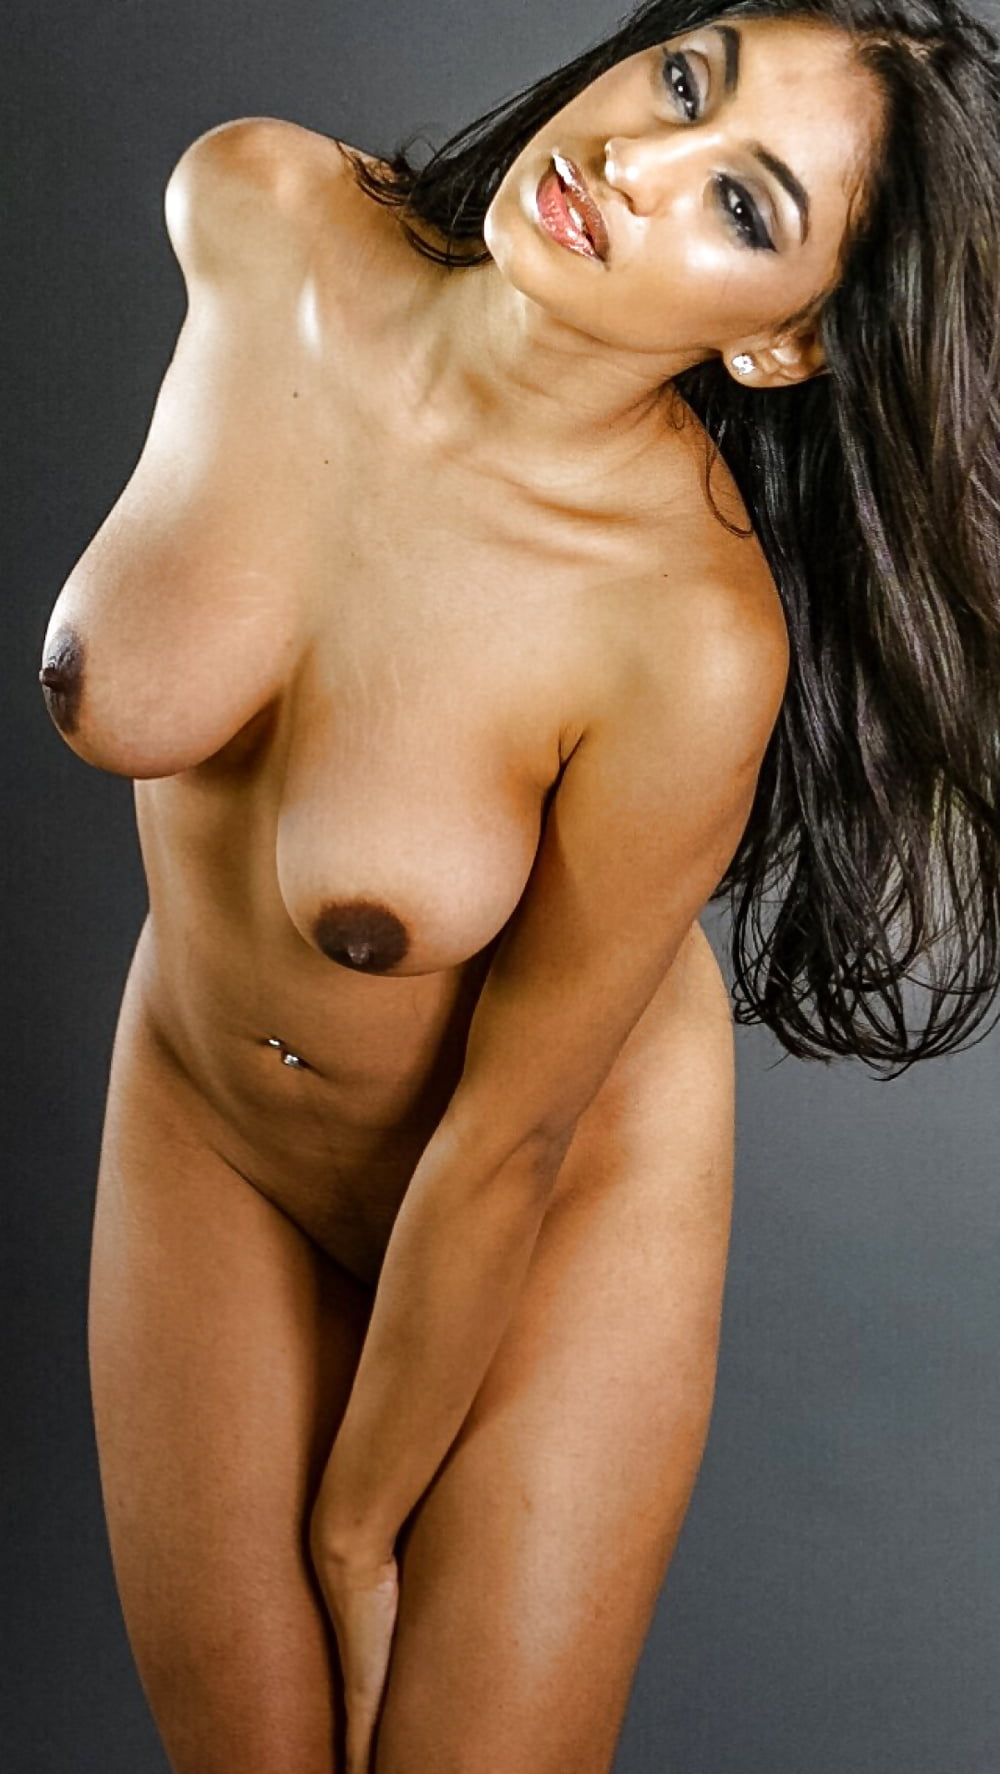 Sexy nude indian porn star — photo 3